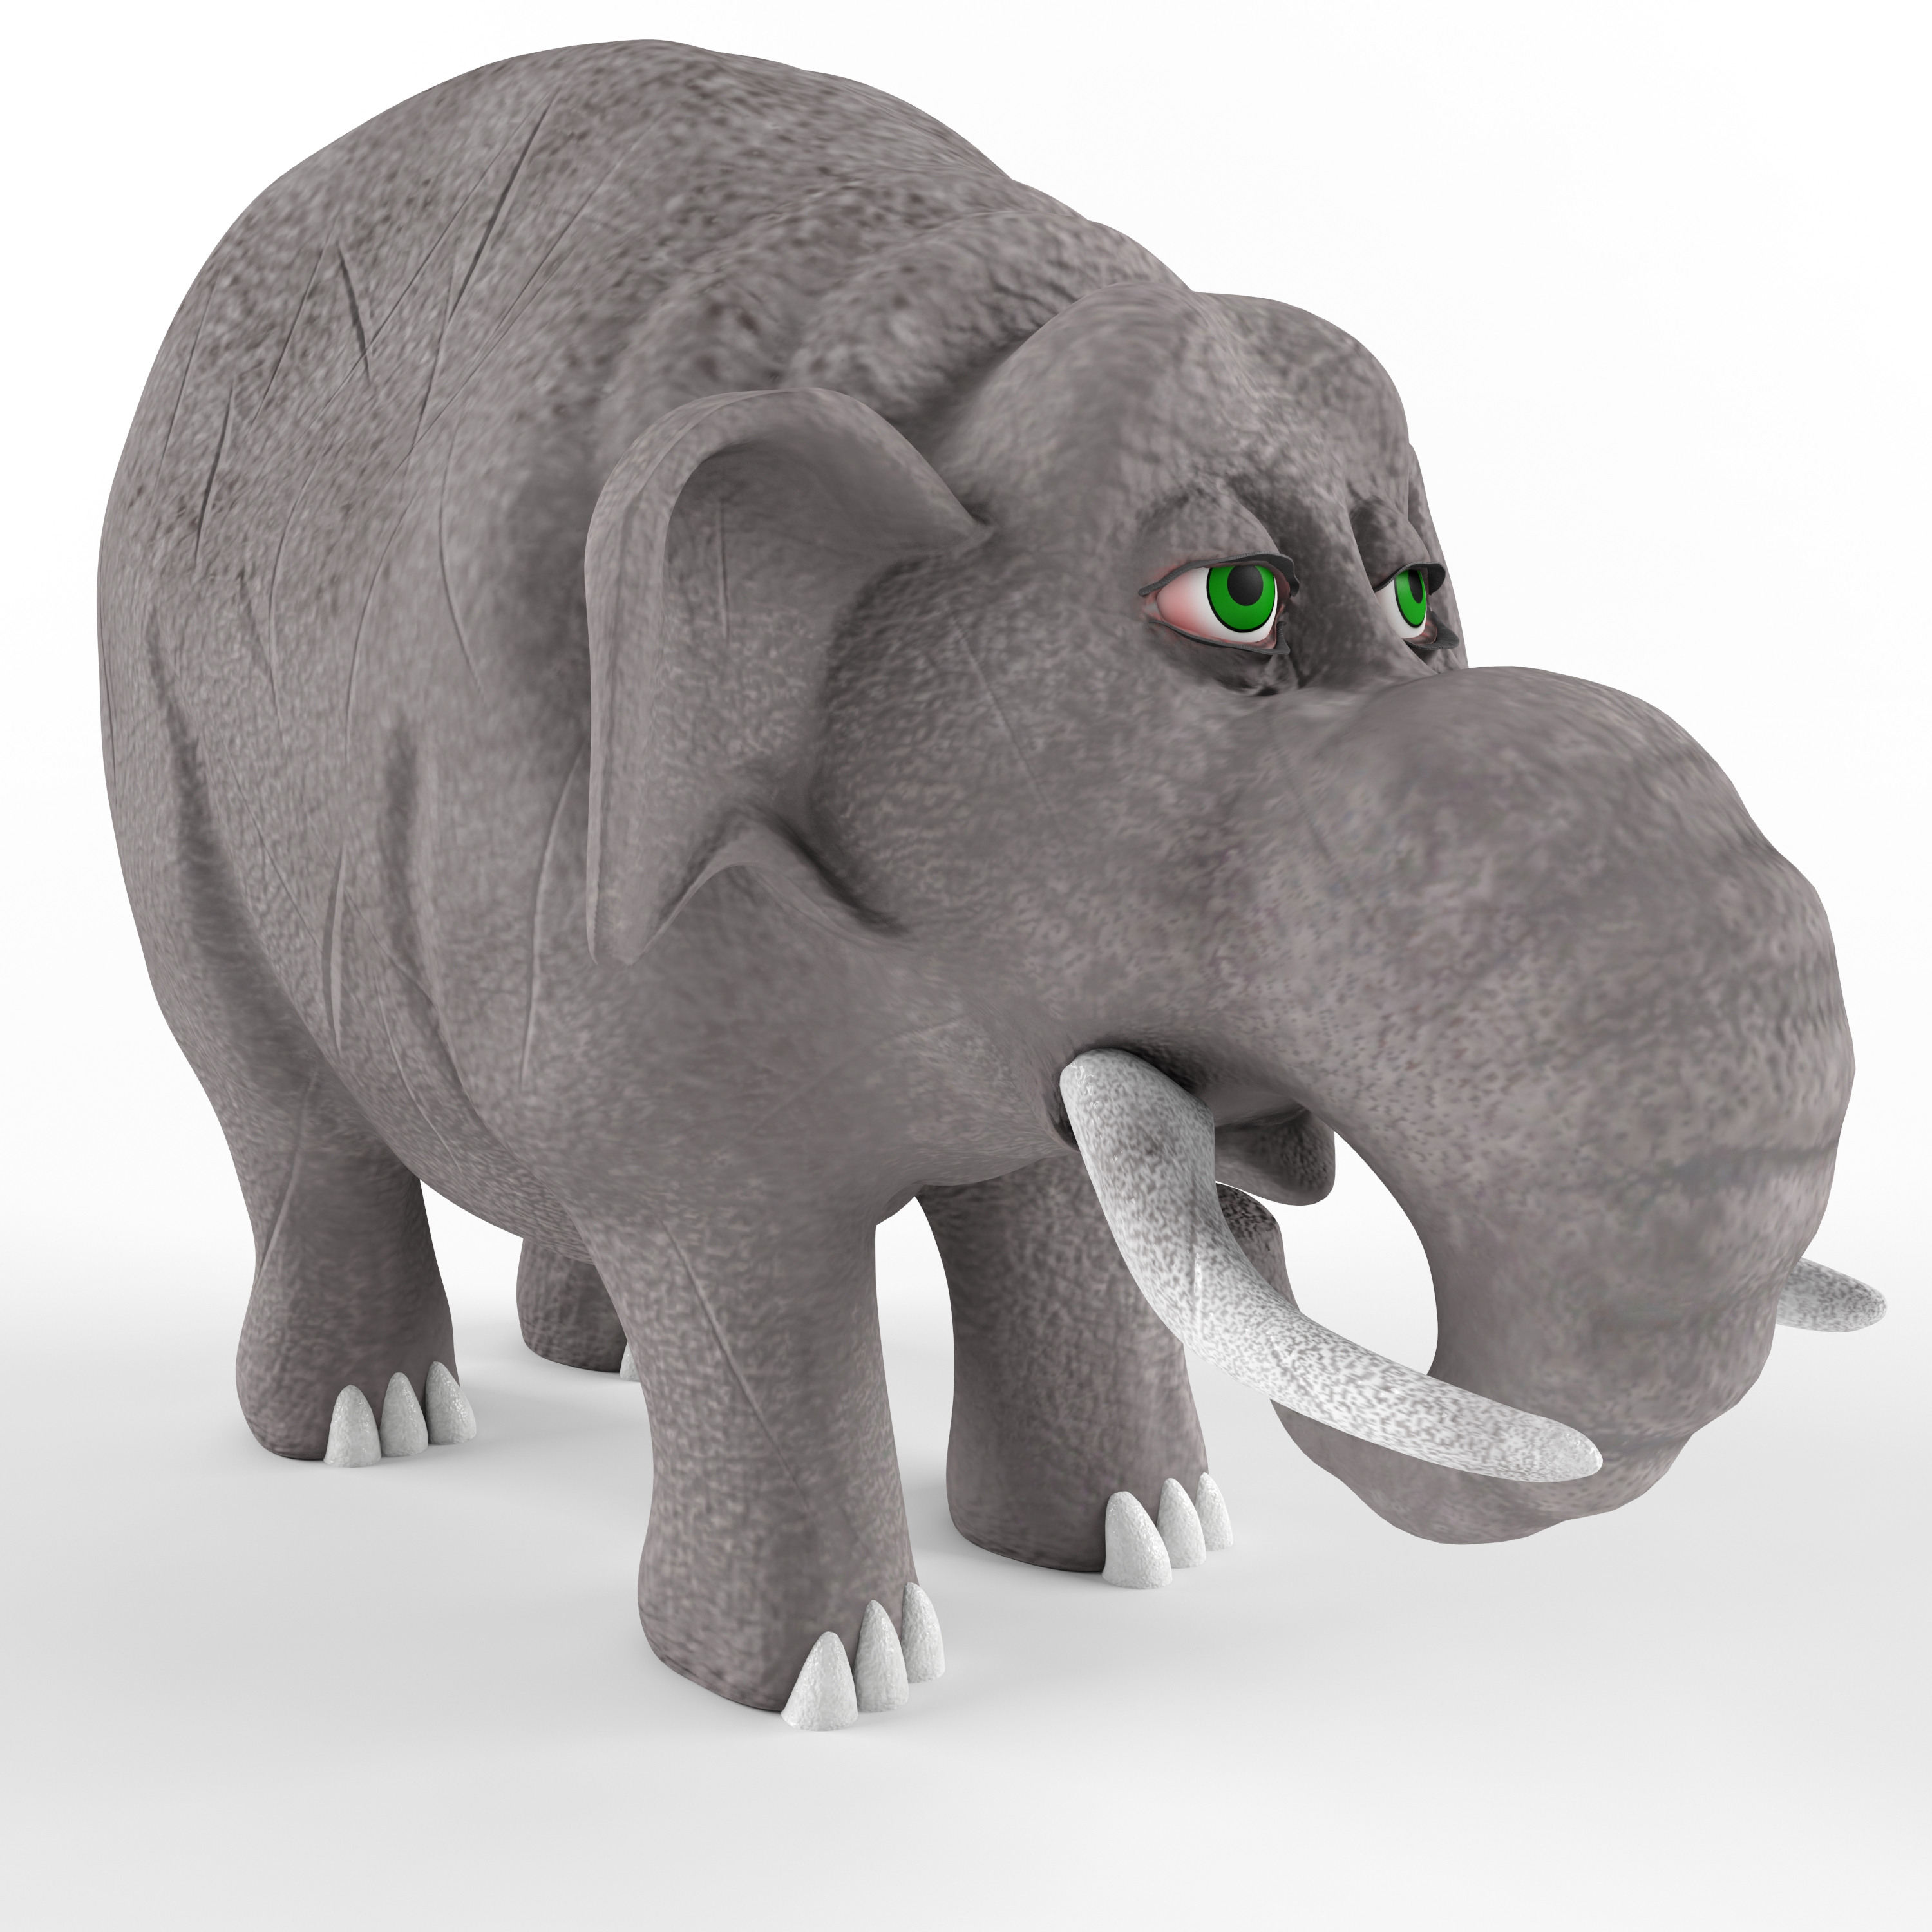 Childrens Plastic Toy Elephant By T1989 3docean